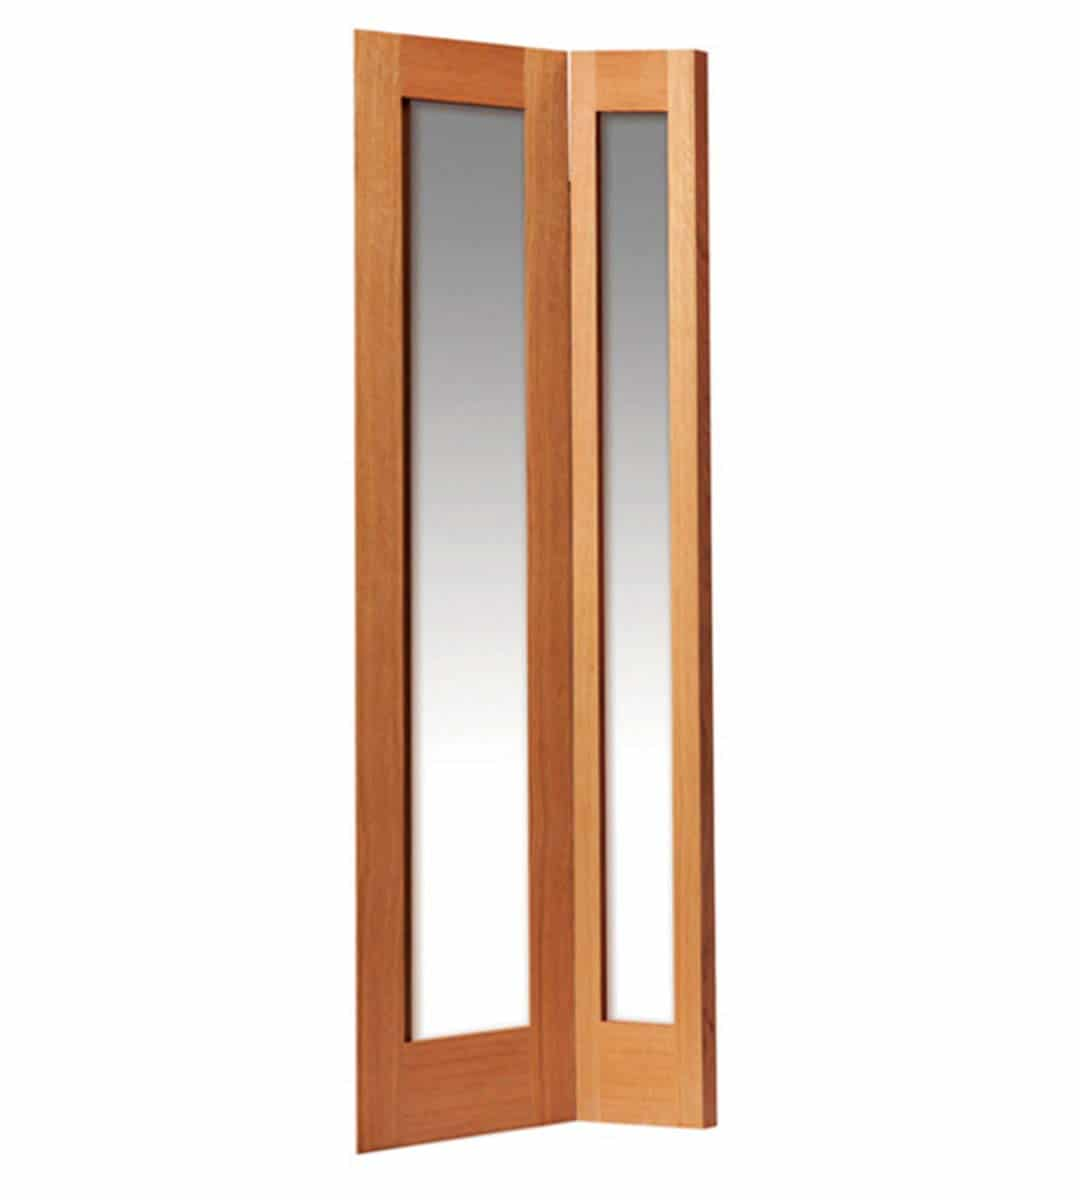 Fuji Glass Bifolding Door